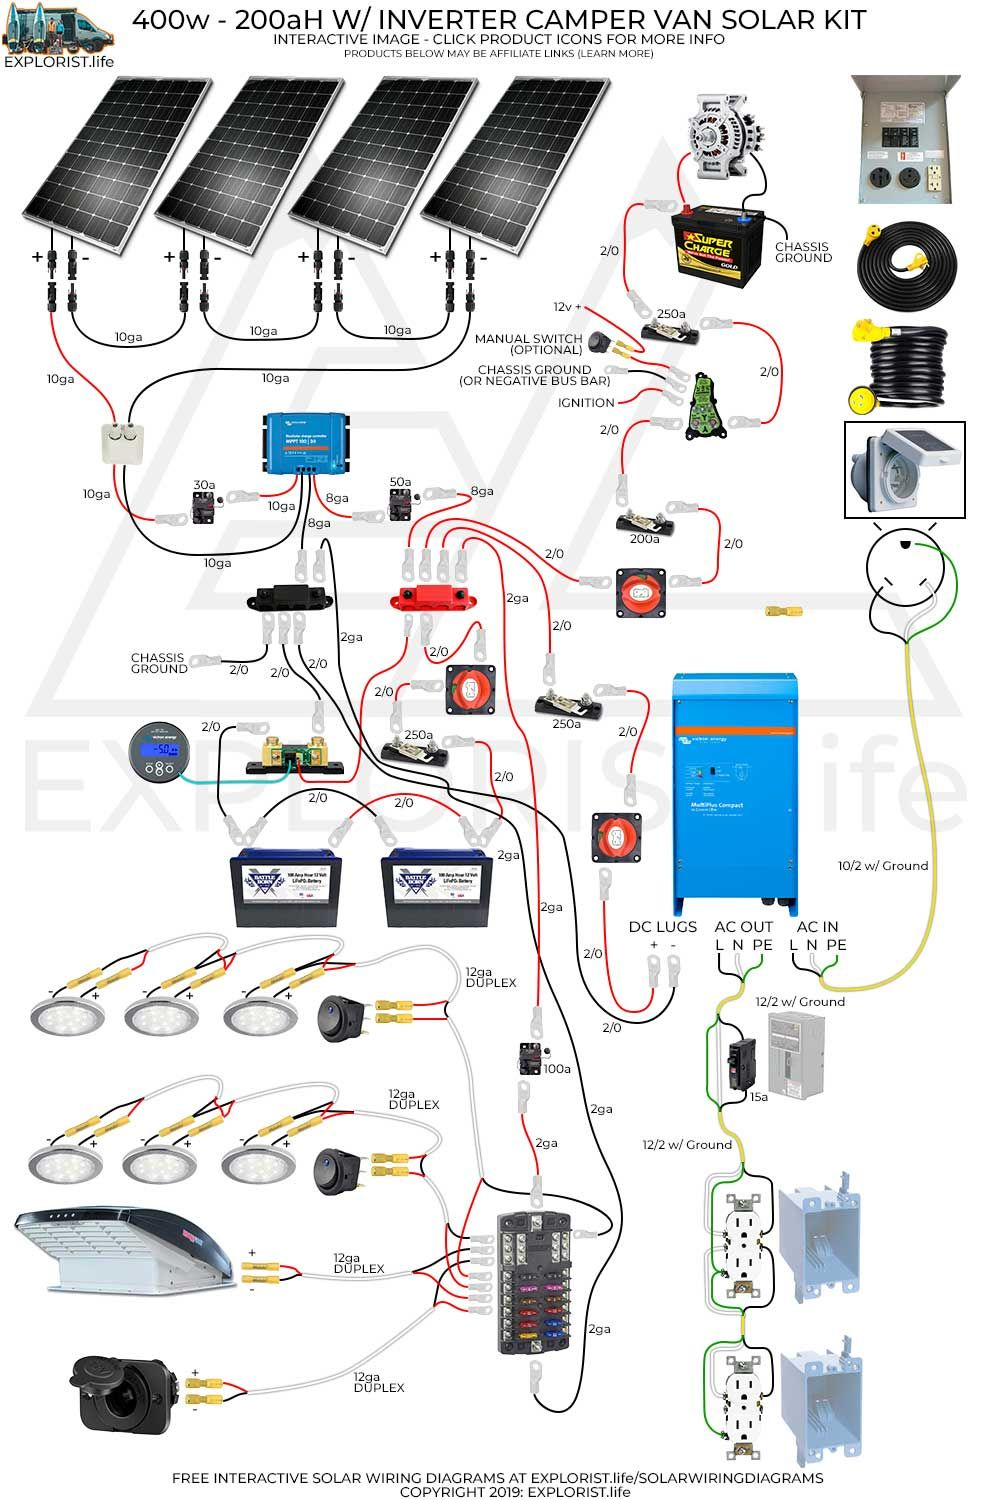 [SCHEMATICS_4HG]  Interactive DIY Solar Wiring Diagrams for Campers, Van's & RV's | Rv solar  power, Diy solar, Diy camper | Land Rv Wiring Diagram |  | Pinterest